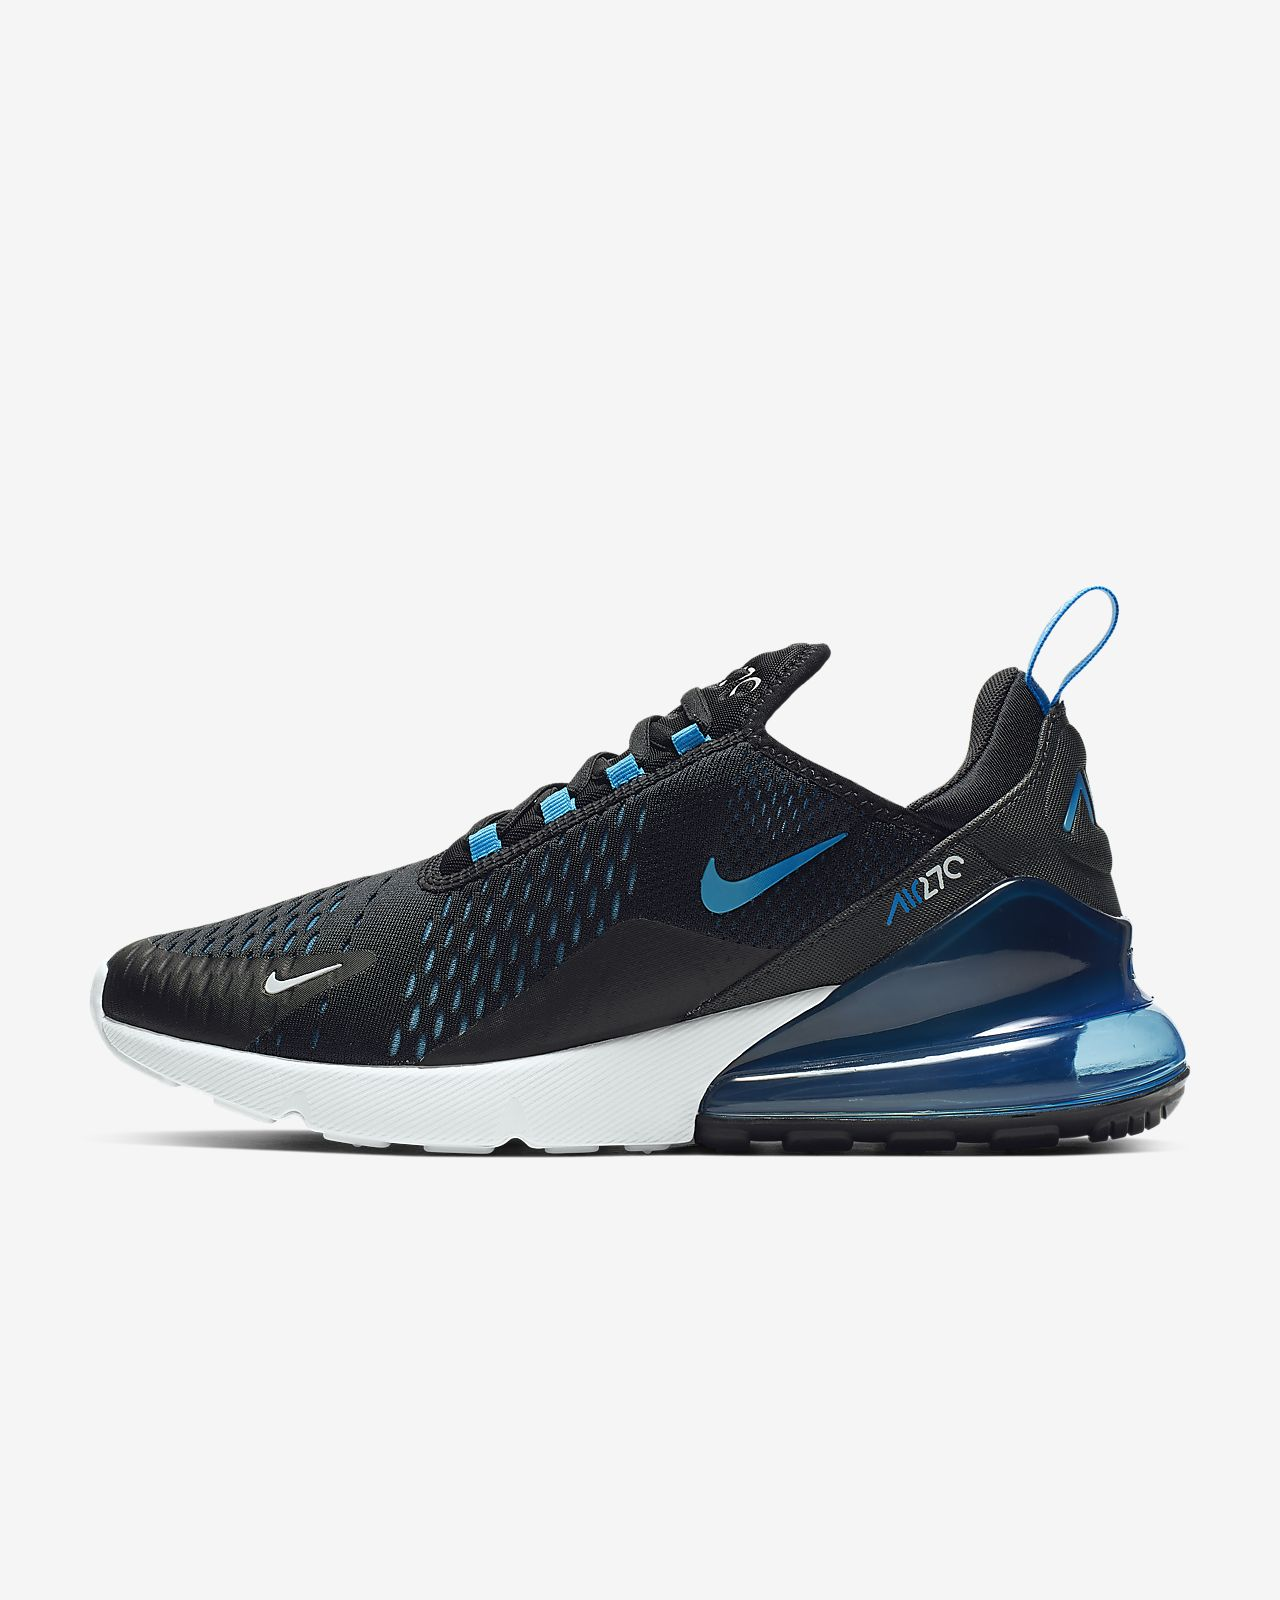 meet af6c4 afa52 Men s Shoe. Nike Air Max 270